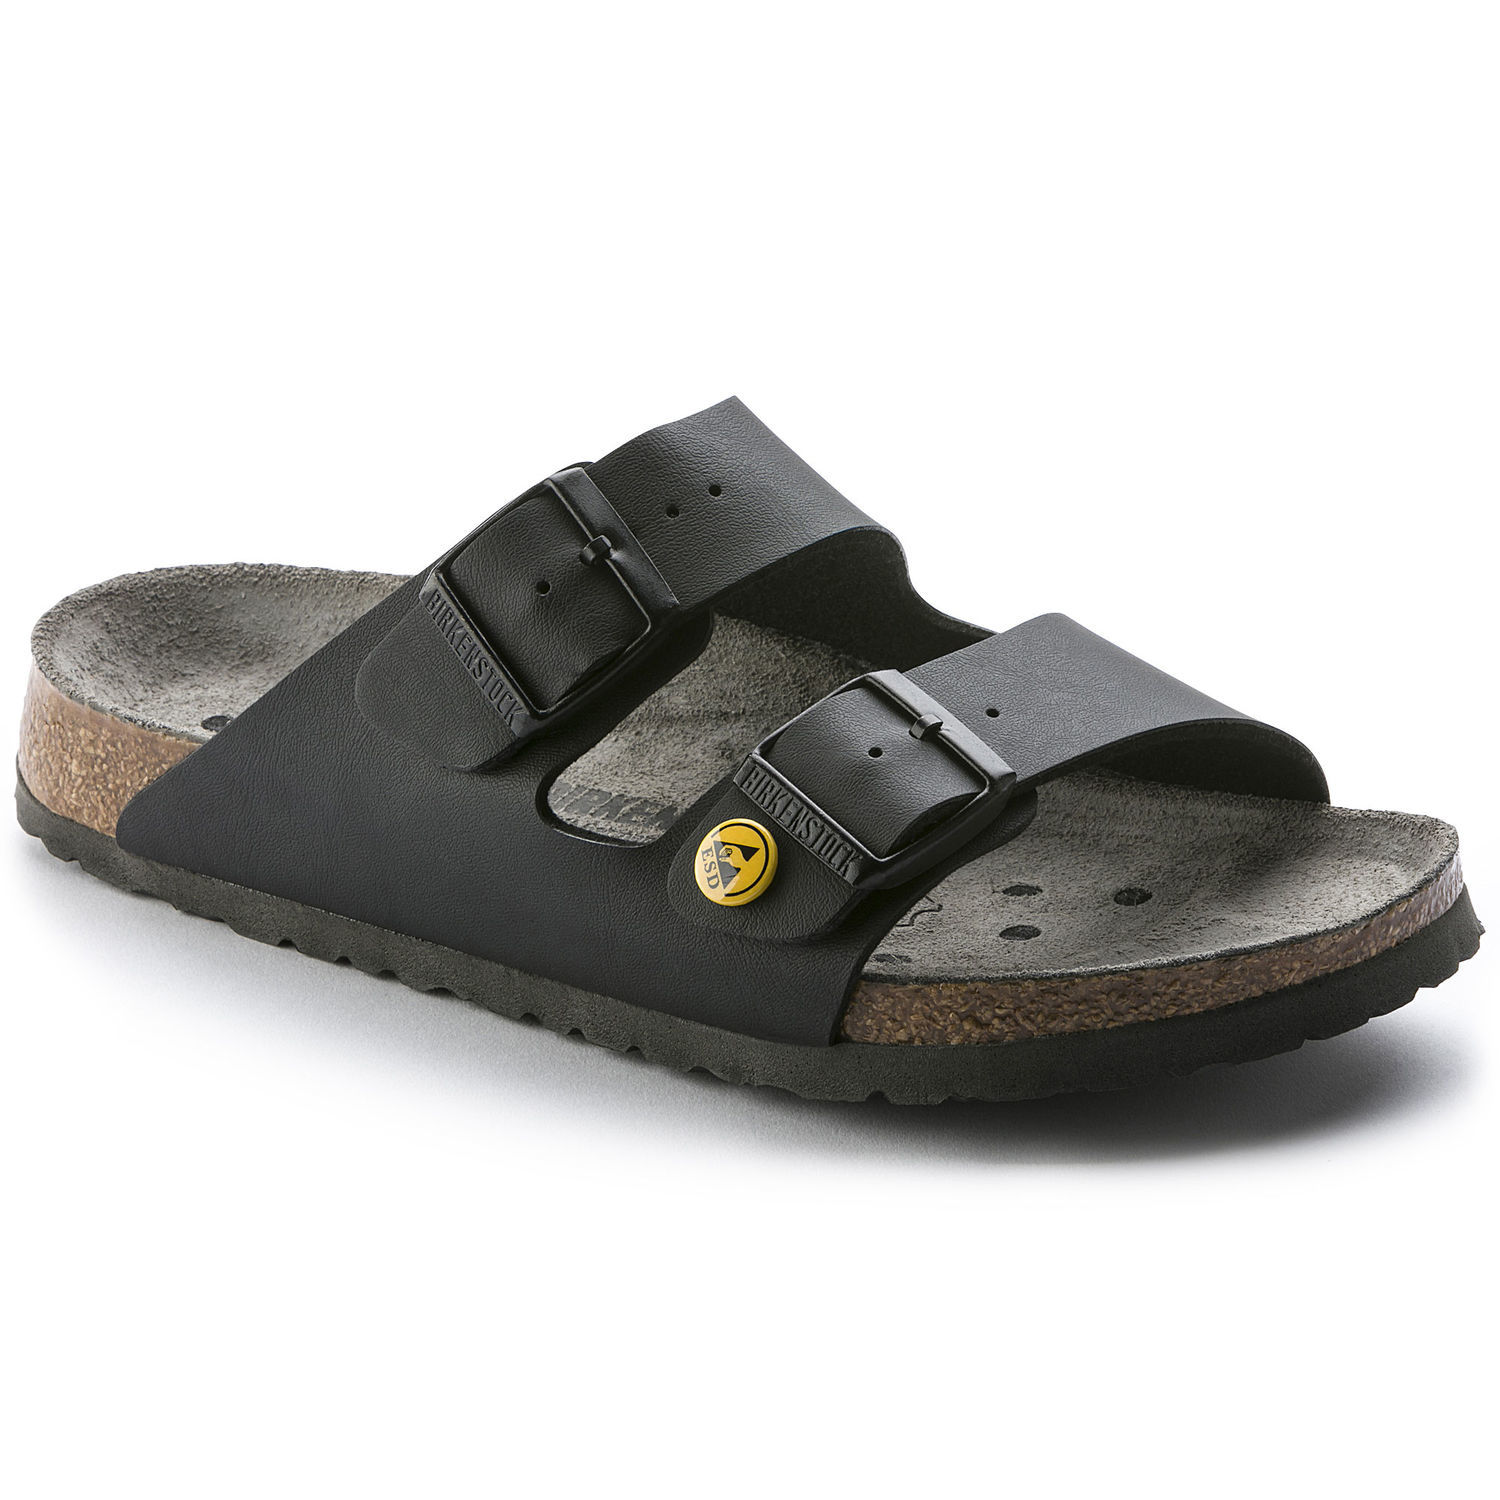 Image of   Sort Arizona ESD sandal fra Birkenstock - 35